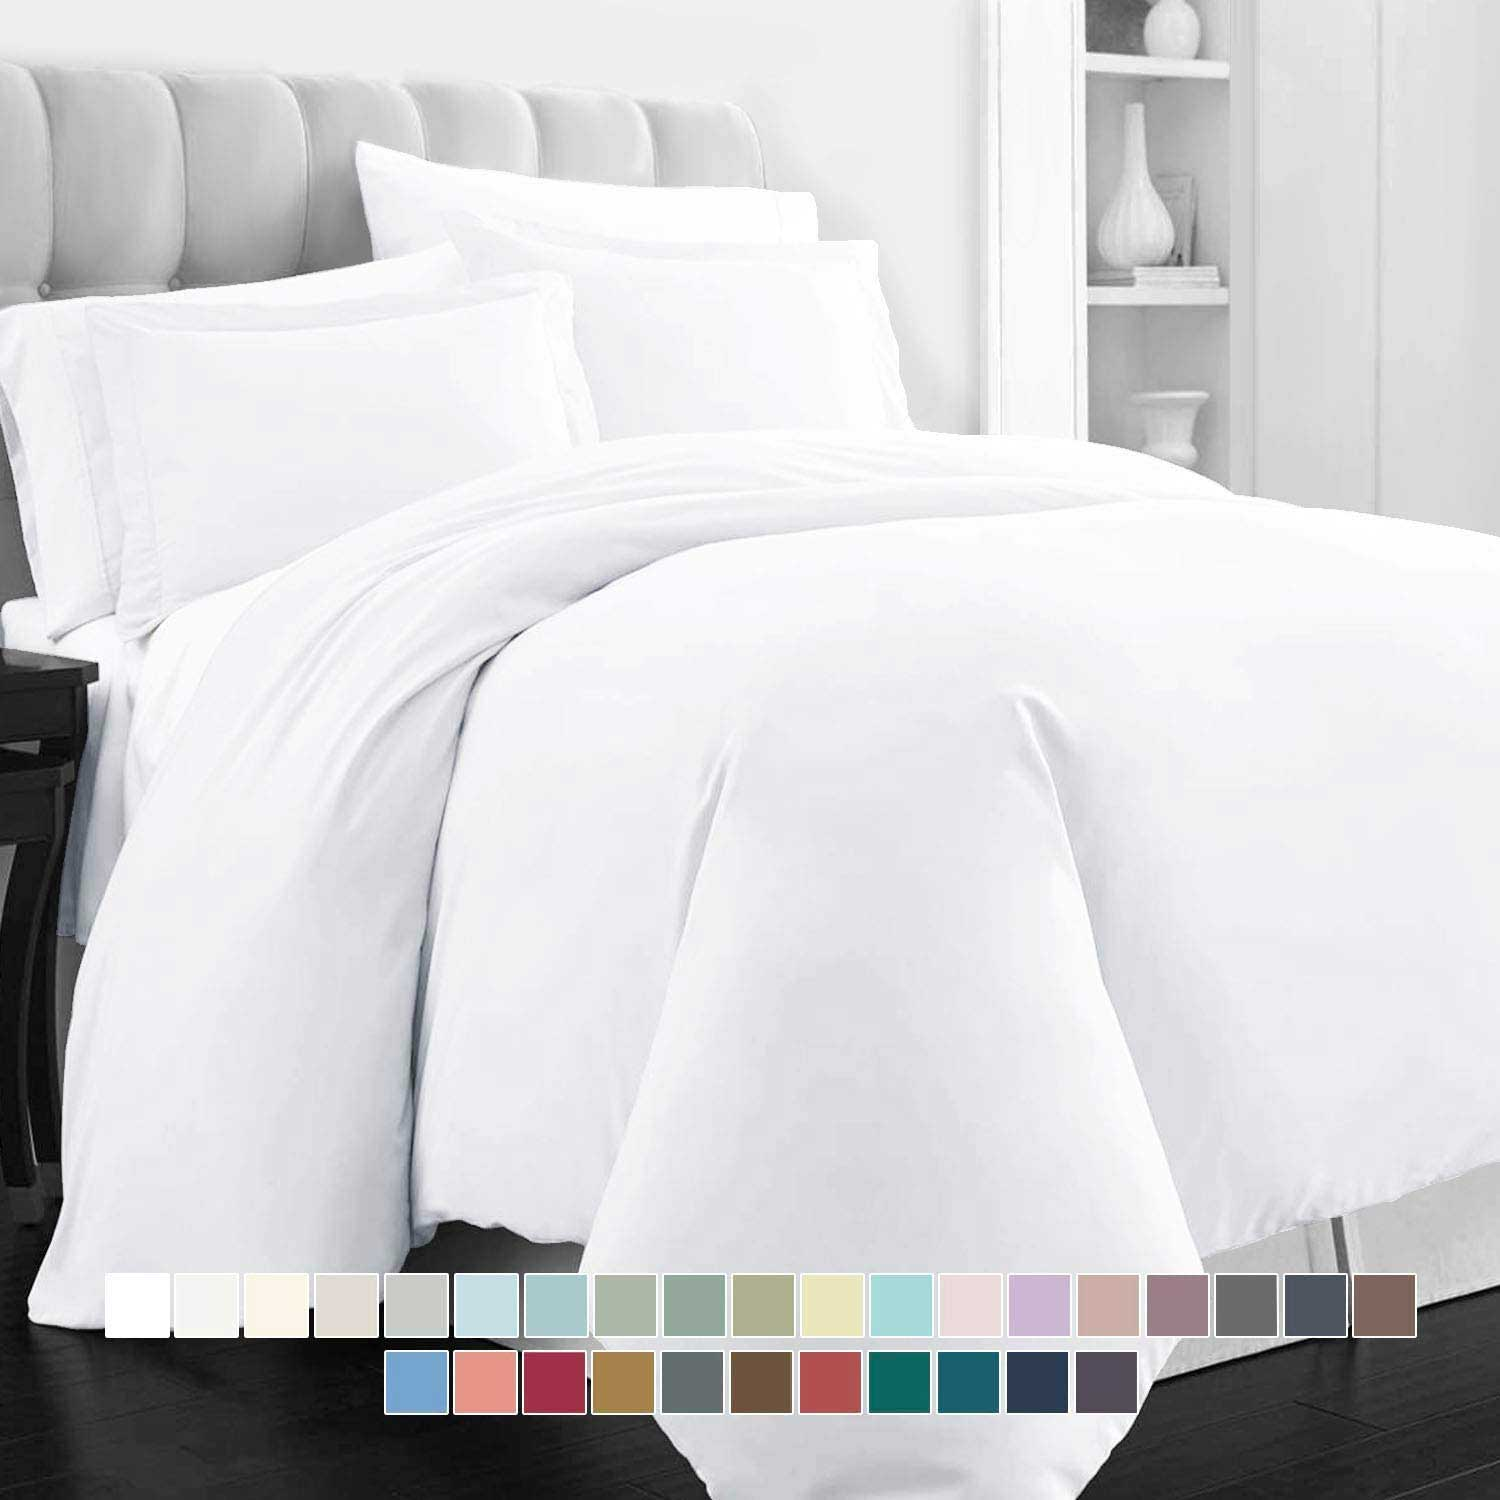 Pizuna 400 Thread Count Cotton Duvet Cover Set Queen White, 100% Long Staple Cotton Bed Set Queen/Full Size, Soft Sateen Bedding Set with Button Closure